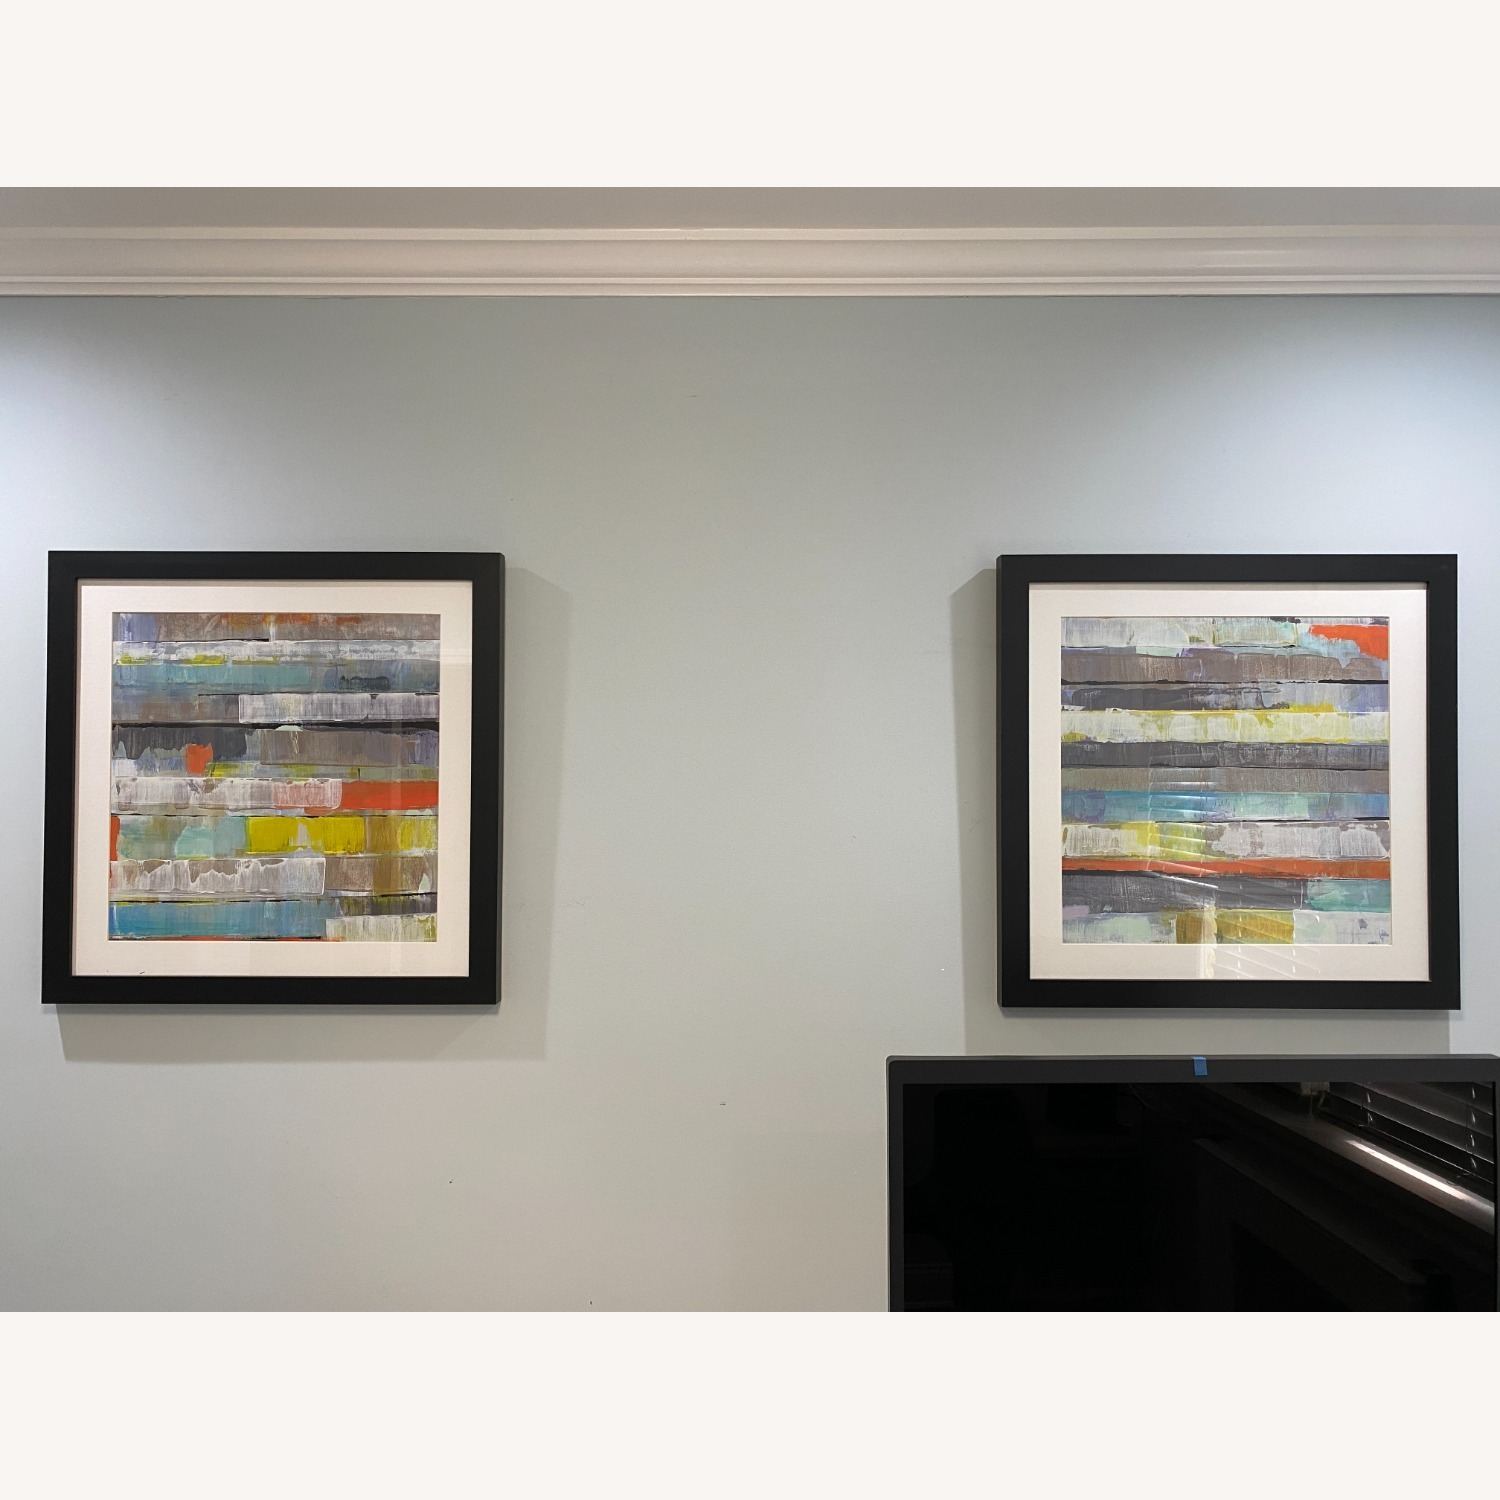 Abstract Z-Gallerie Wall Art: Metro 1 & 2 - image-1